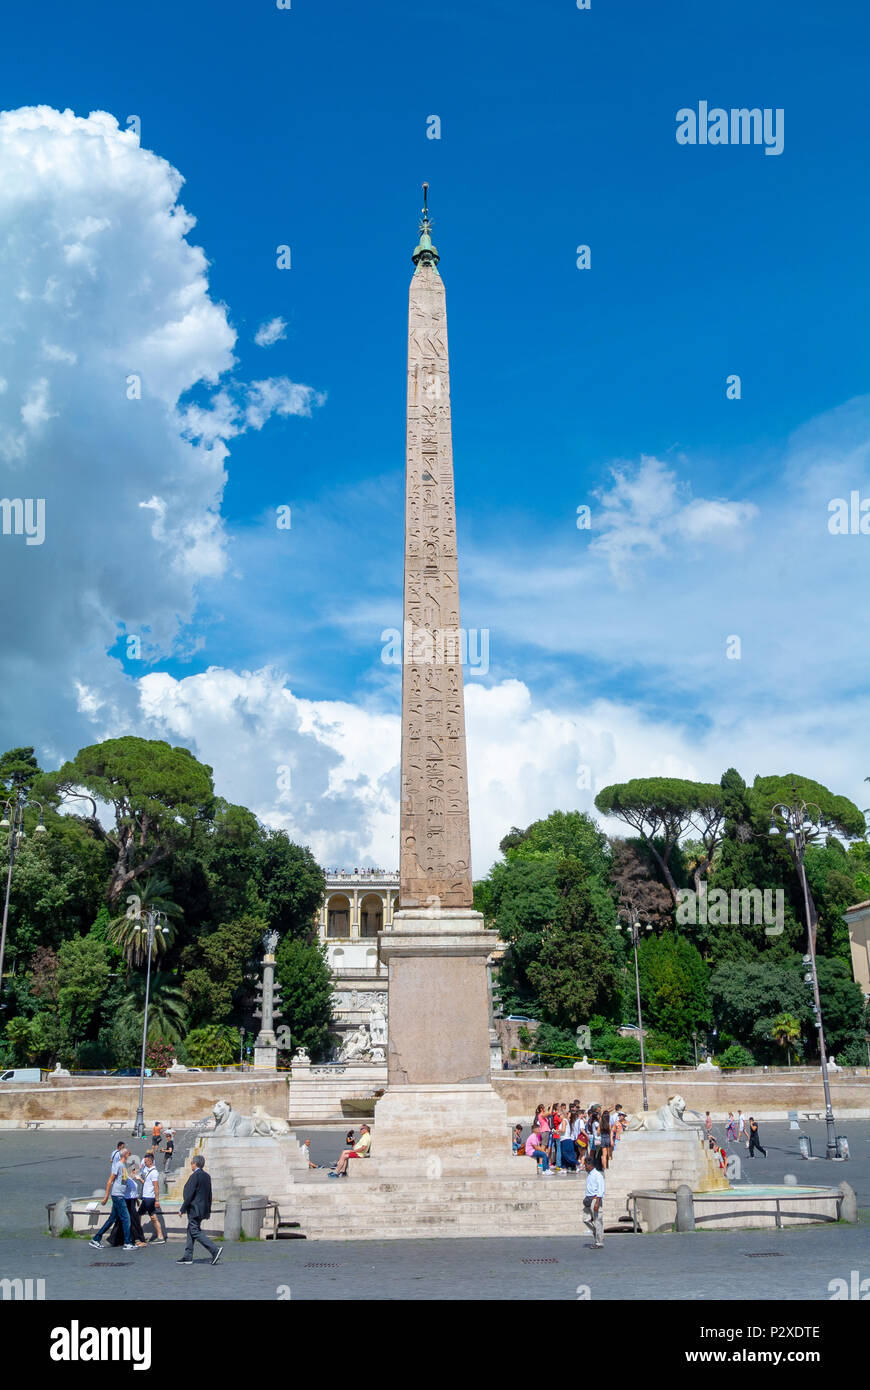 Rome, Italy, Europe, Tourists by Egyptian Obelisk in Piazza del Popolo - Stock Image